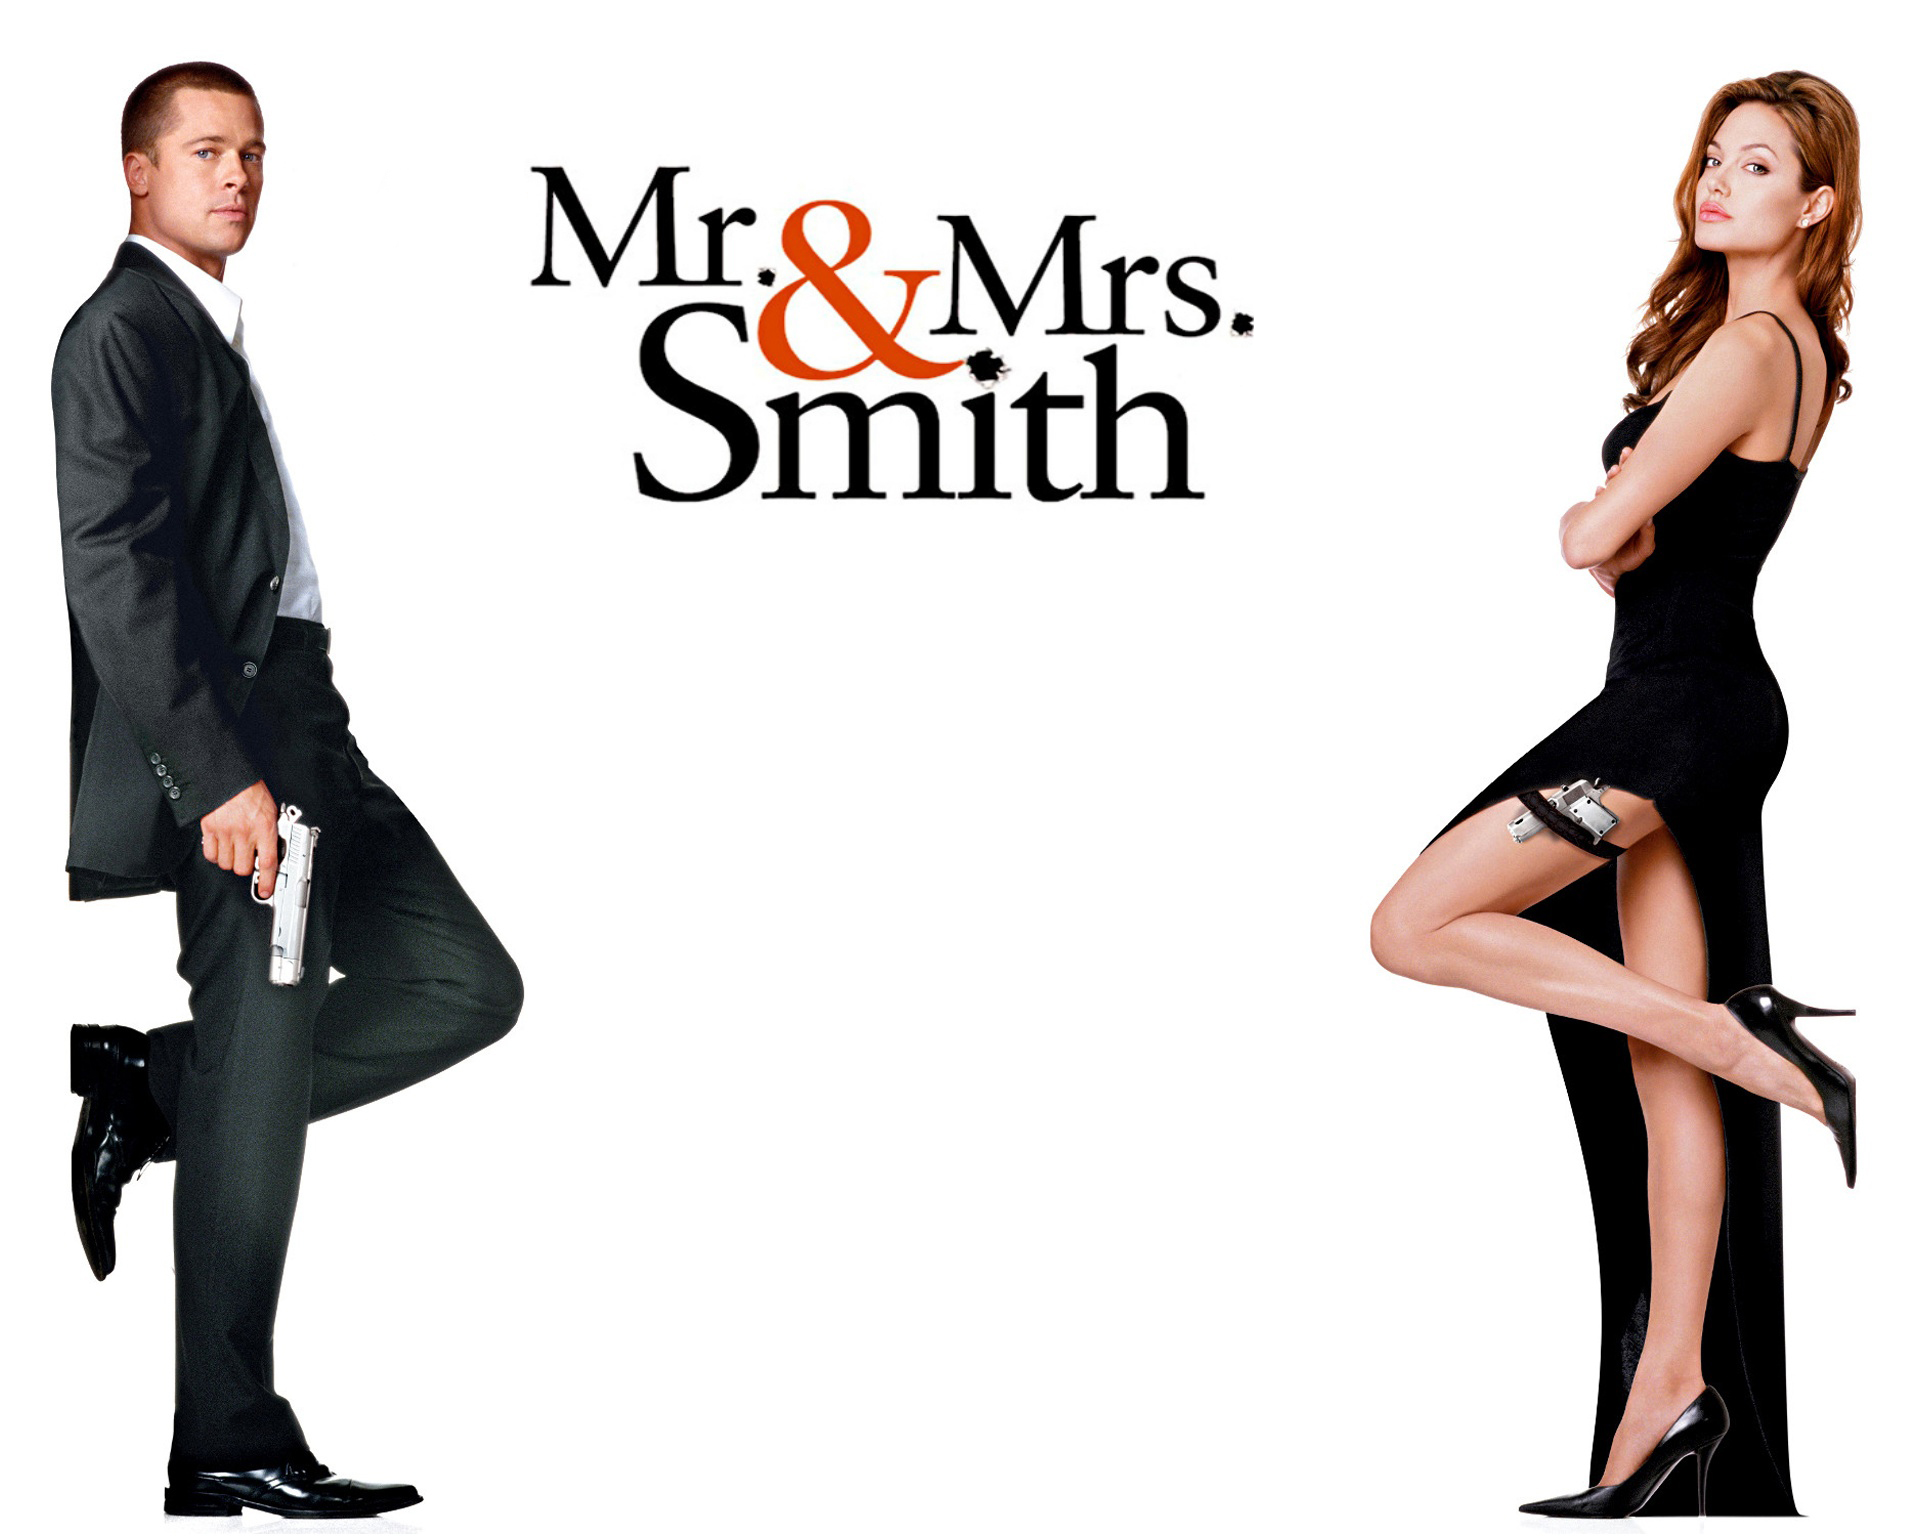 HQ Mr. & Mrs. Smith Wallpapers | File 545.32Kb